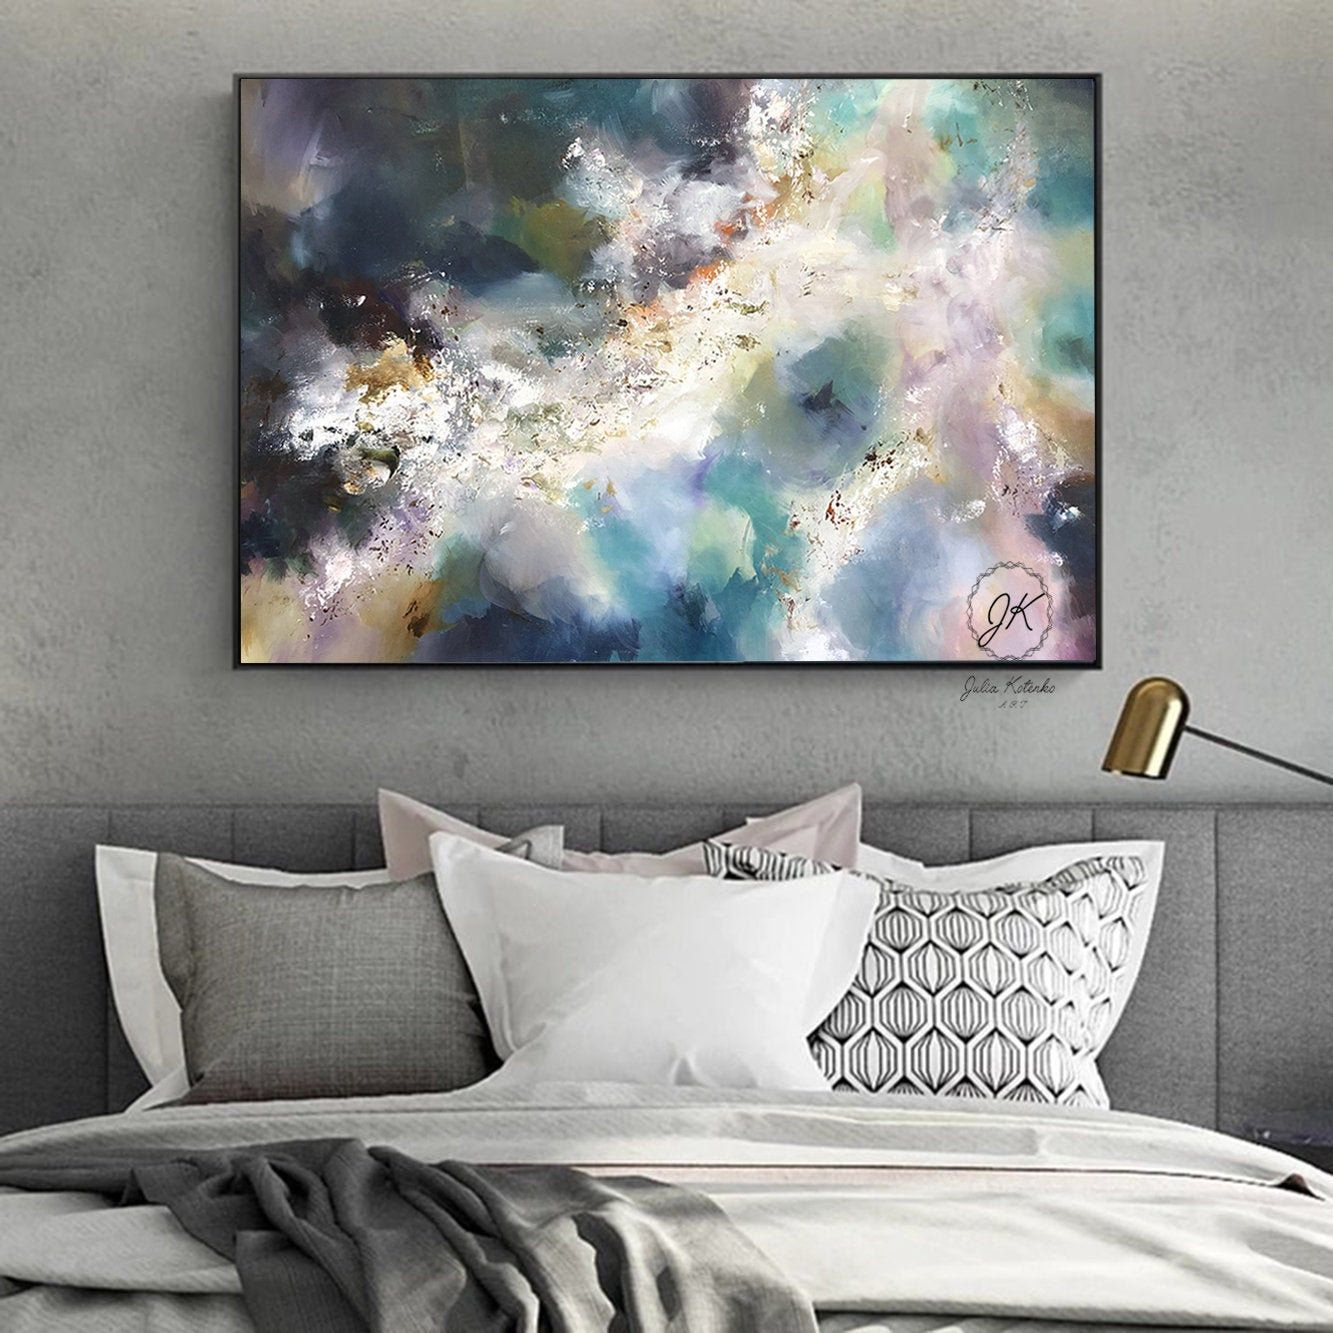 Large Wall Art Bedroom Above Bed Abstract Oil Painting Intended For Newest Blended Fabric Italian Wall Hangings (View 14 of 20)